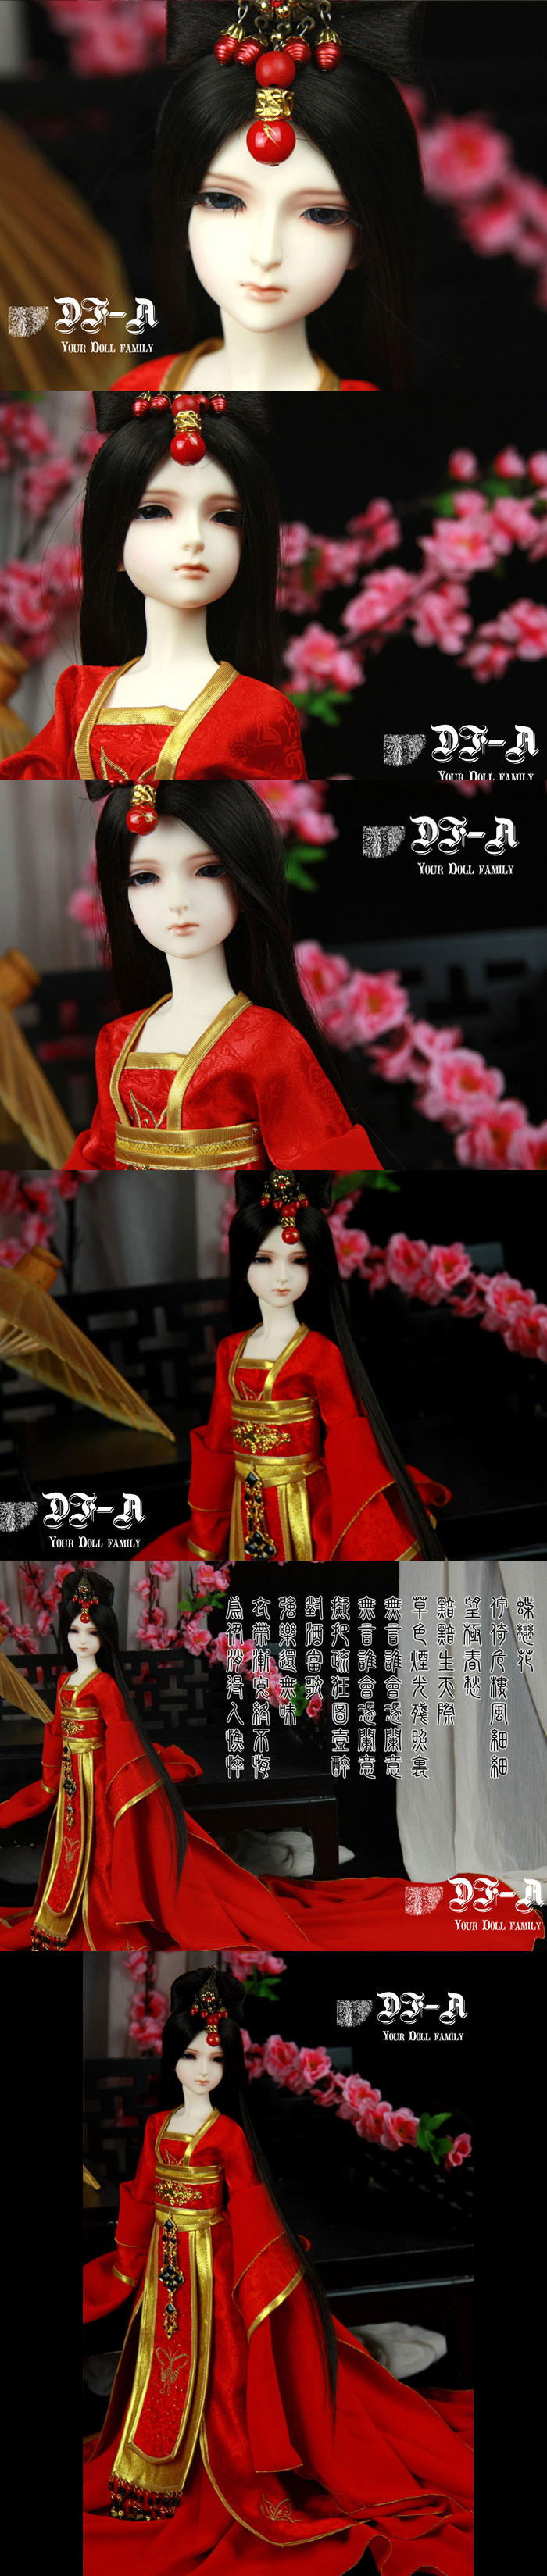 BJD Jiran 45cm Girl Ball-jointed doll